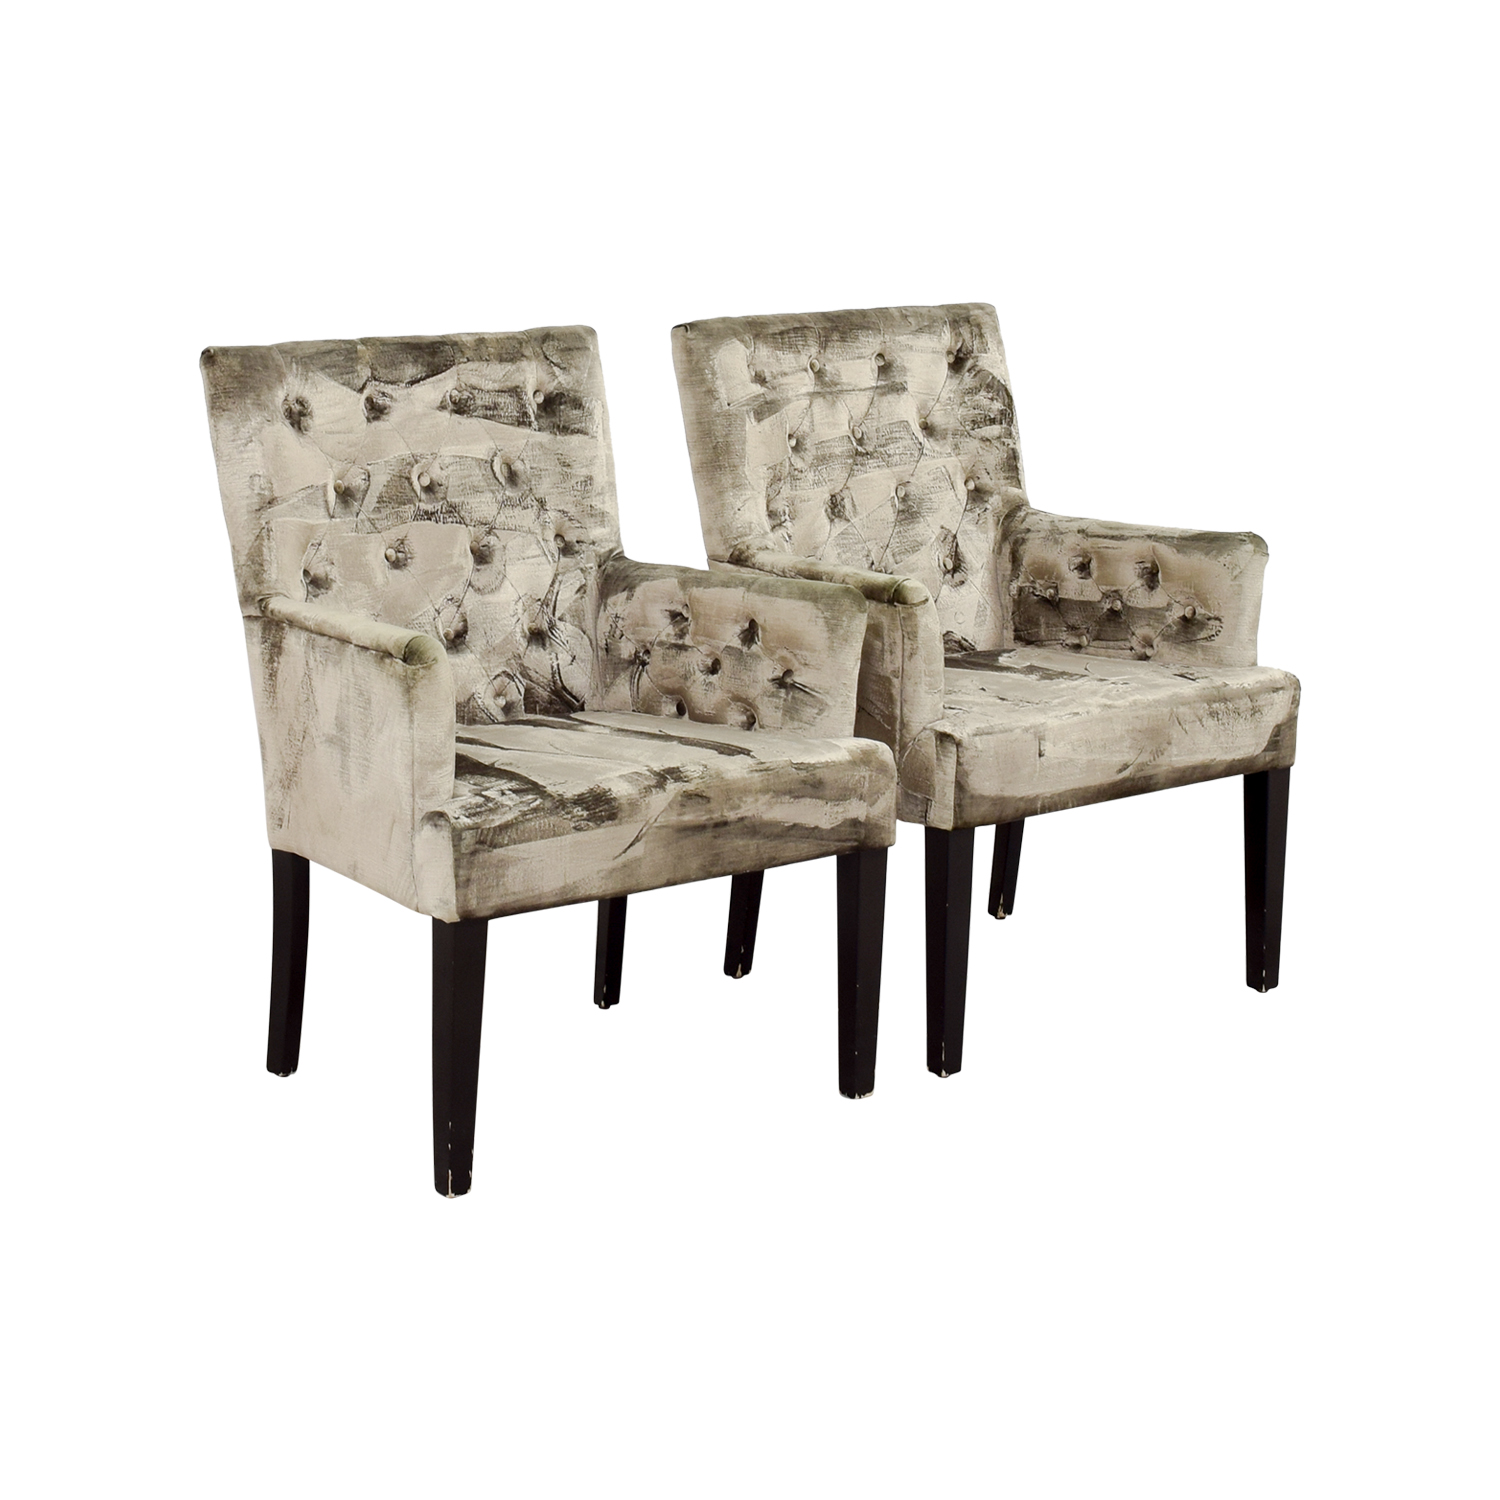 buy Z Gallerie Z Gallerie Lola Bella Grey Tufted Arm Chairs online